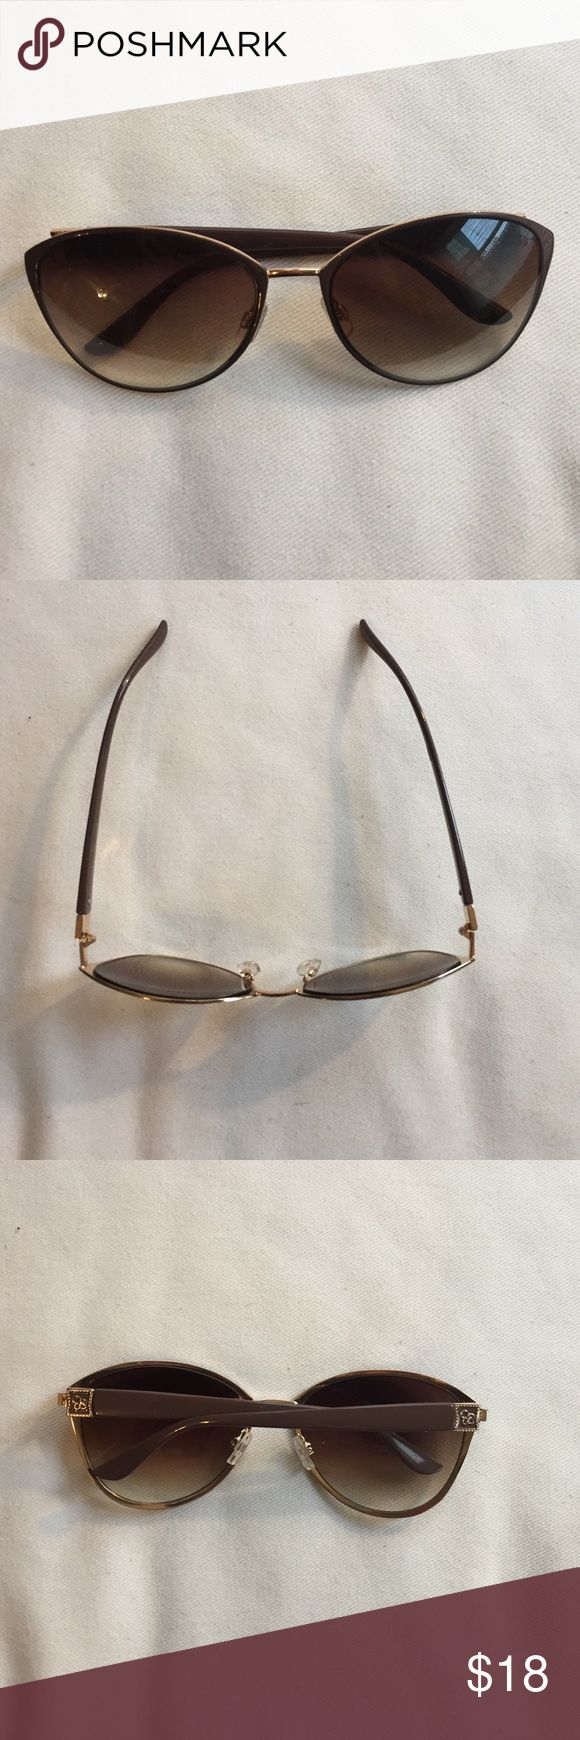 Jessica Simpson Sunglasses Taupe and gold. Like new. Accessories Sunglasses